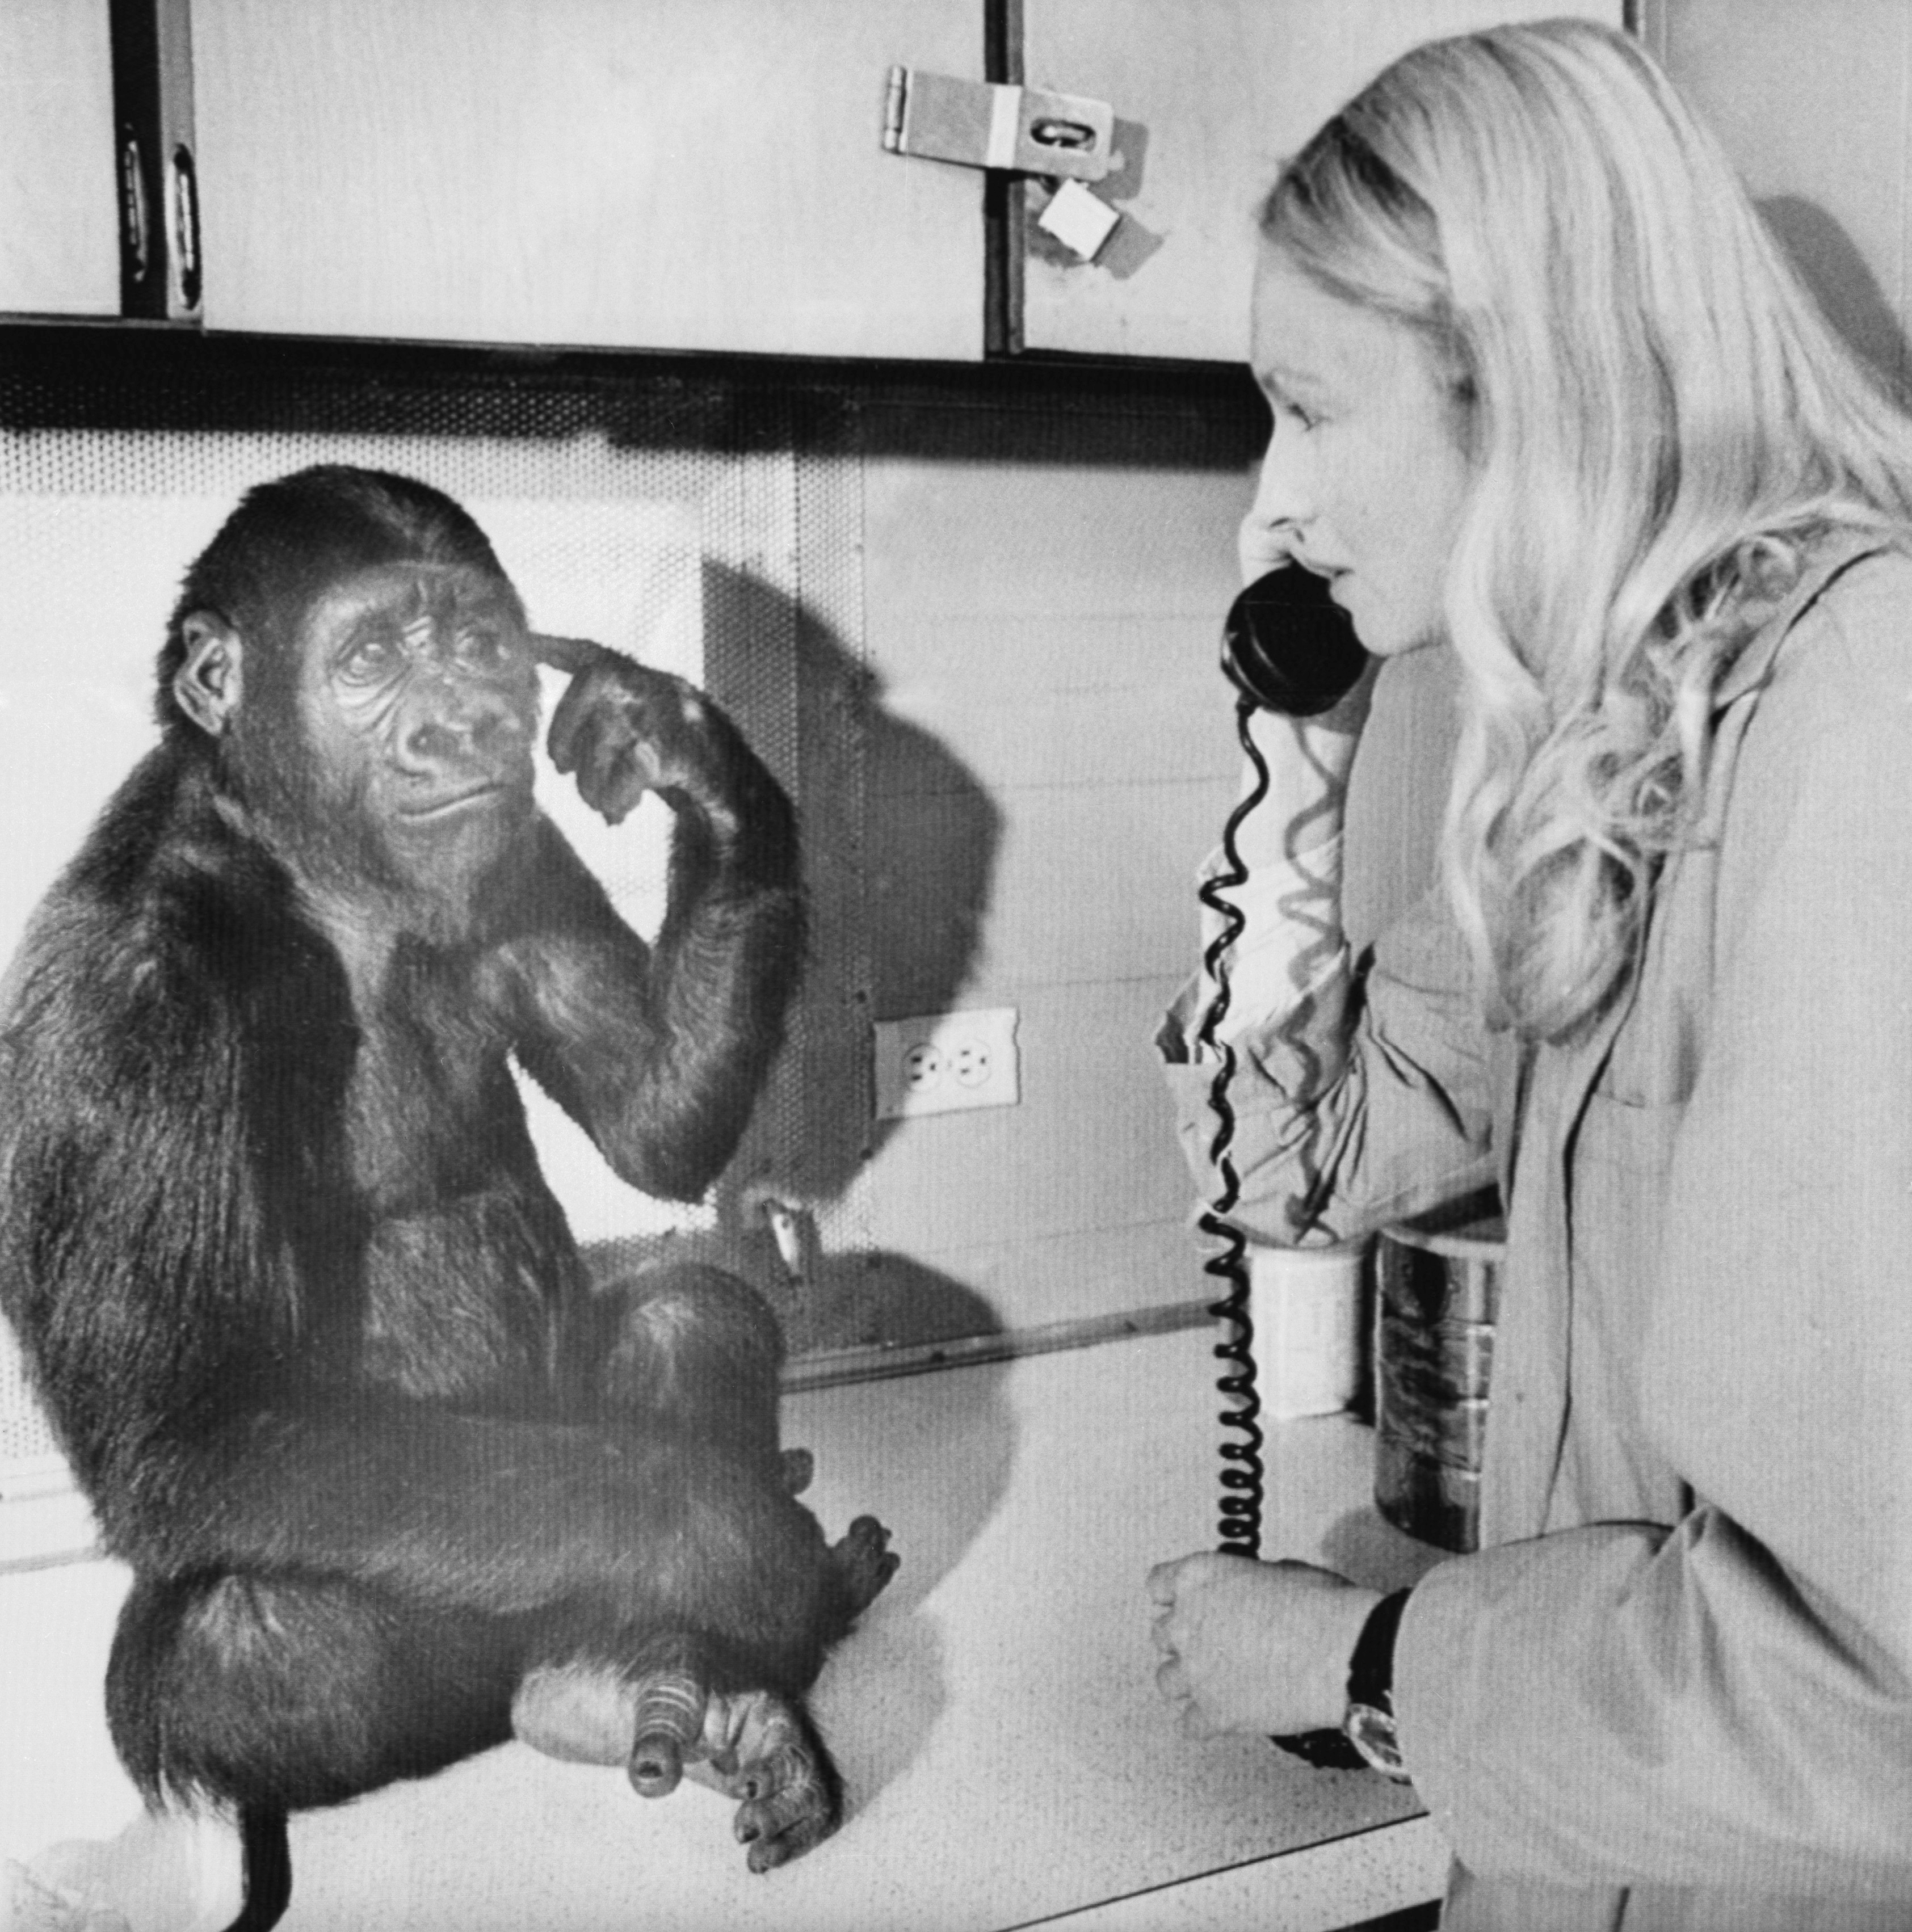 You key there me cookie.  With that sign language, Koko the gorilla tells her mentor; 28-year old graduate student Penny Patterson, to get the key, open the closet and get a goodie out of the cookie jar.